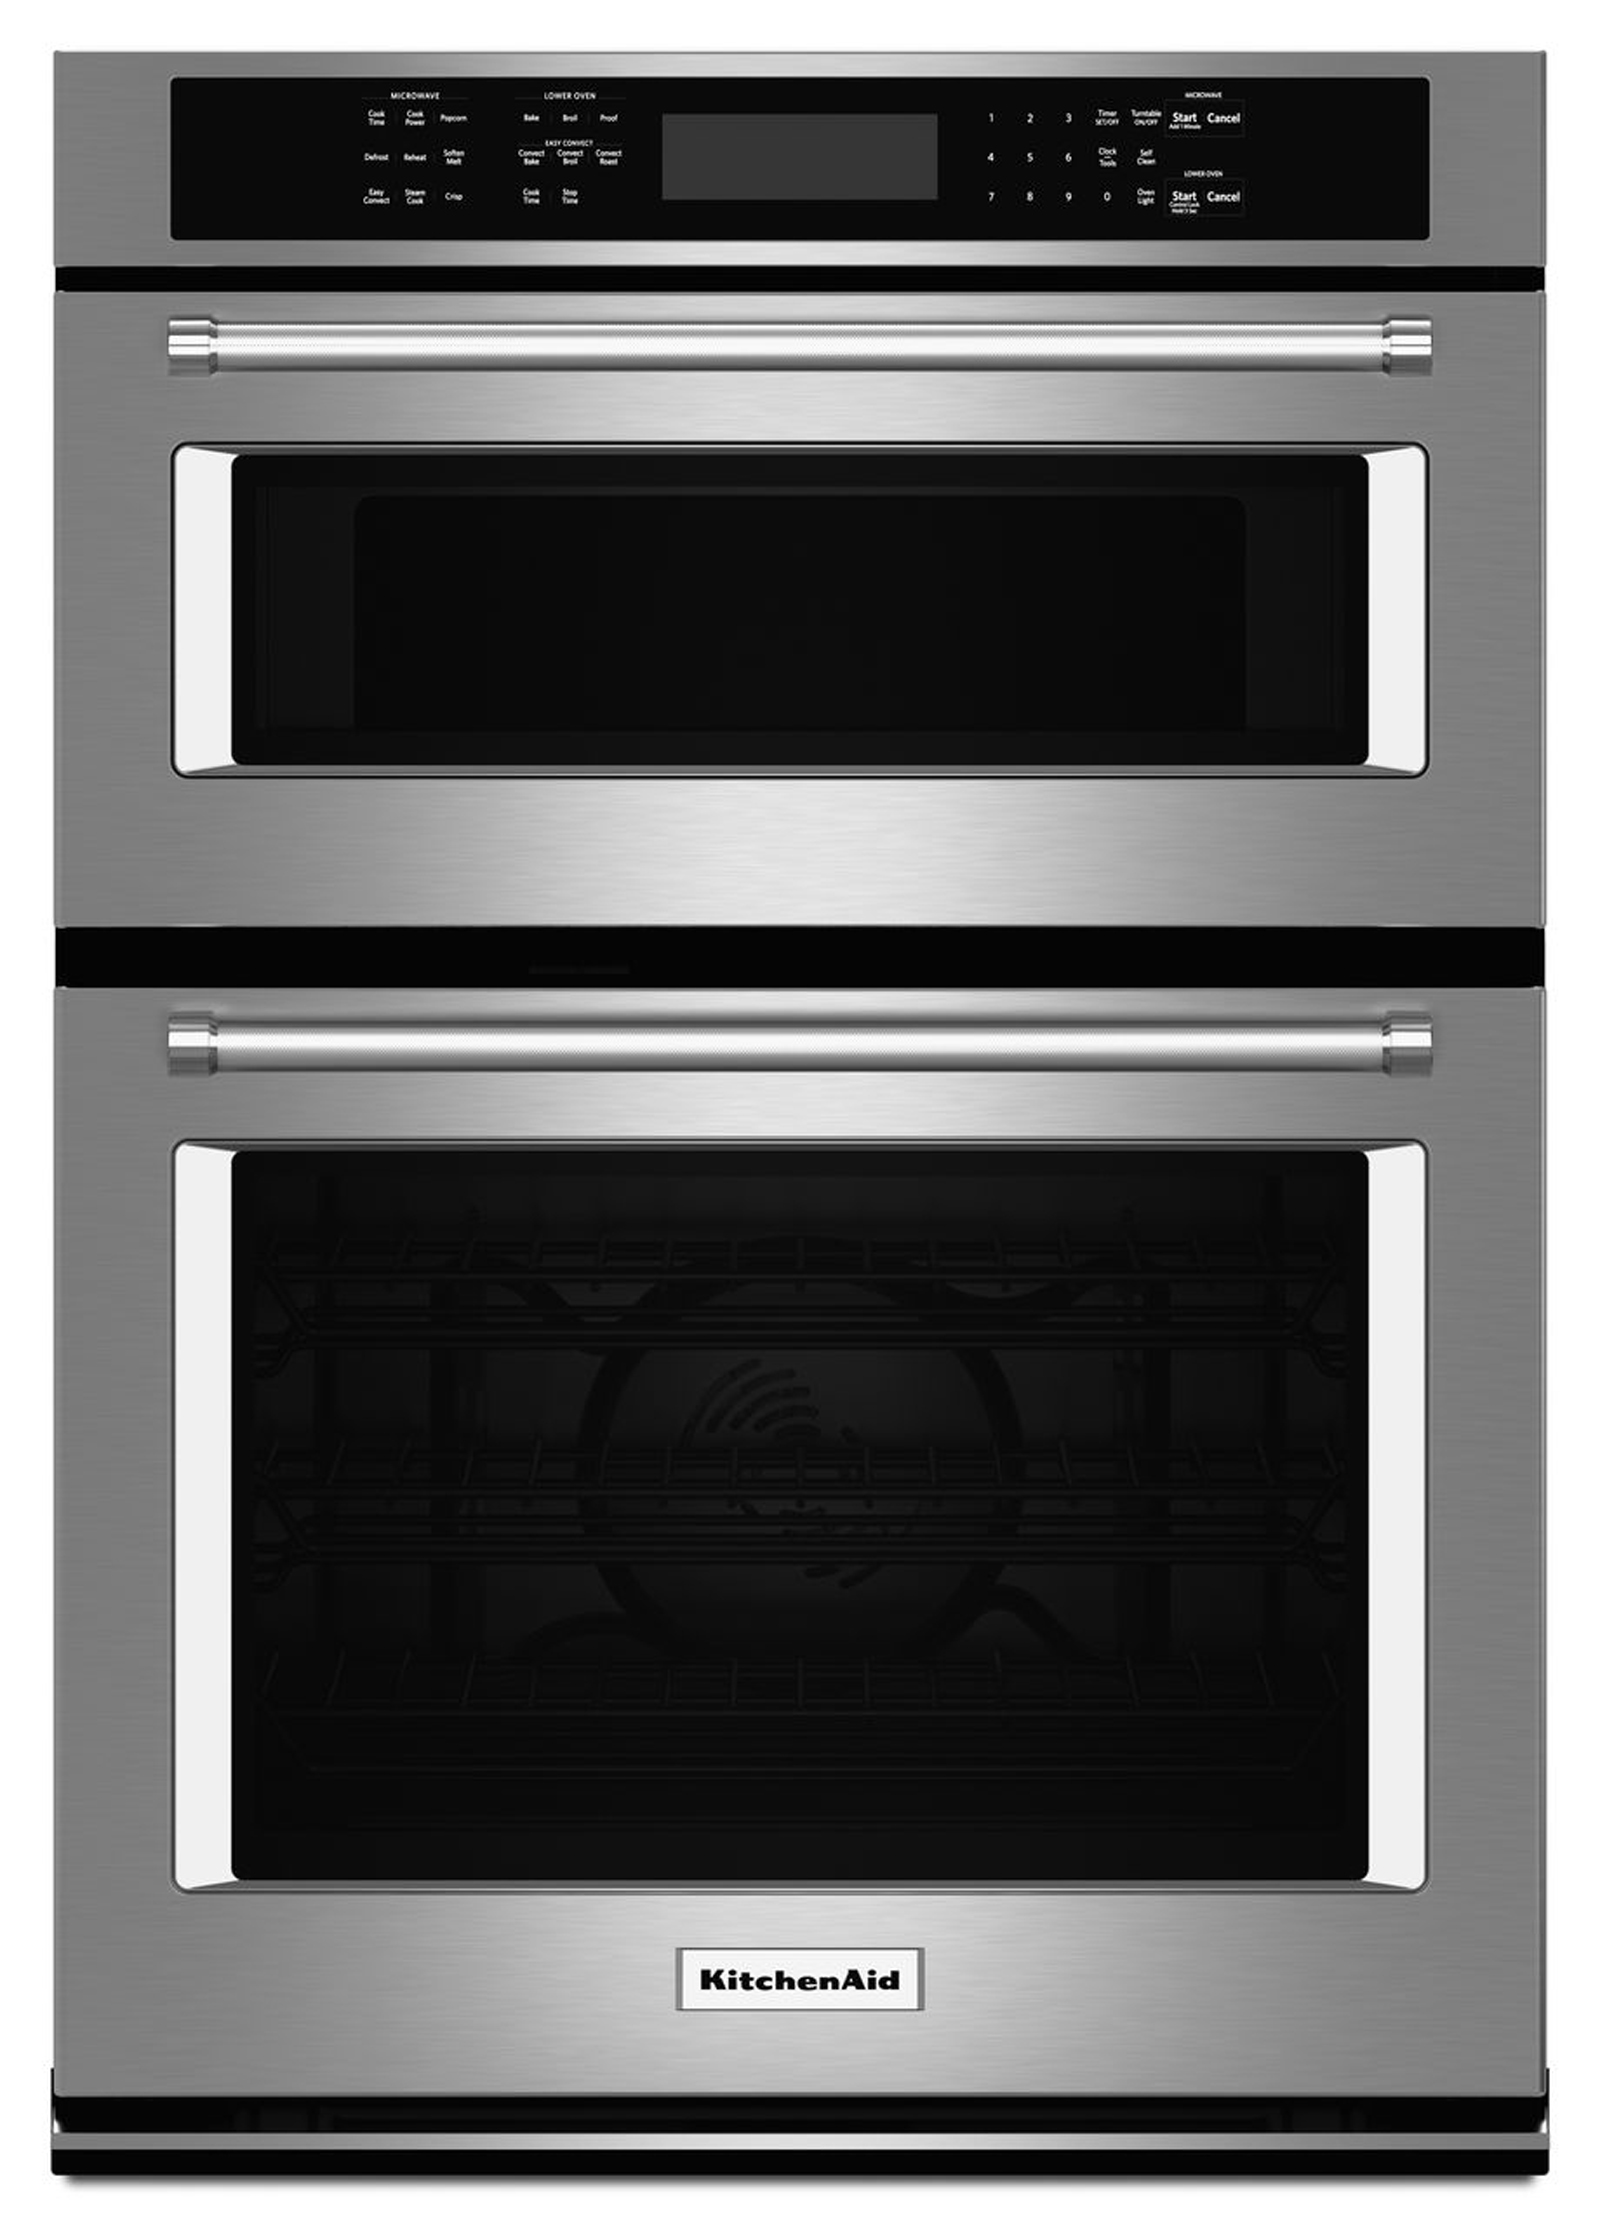 Kitchenaid Conventional Oven modren kitchenaid conventional oven captivating countertop